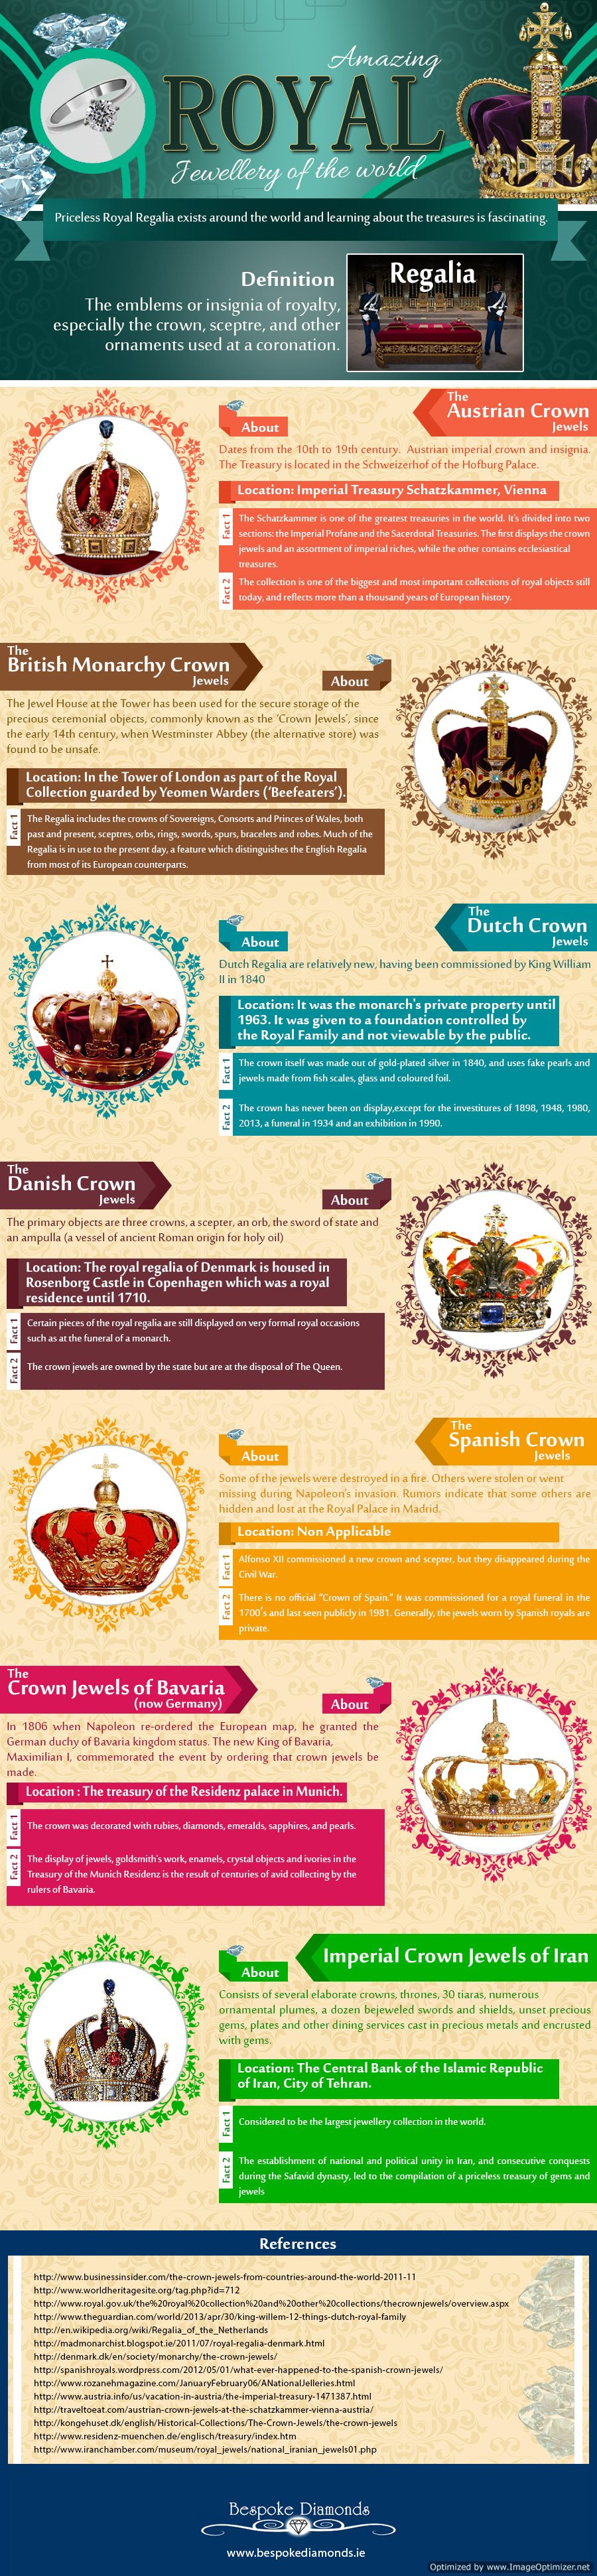 Amazing-Royal-Jewellery-of-the-World-bespoke-infographic